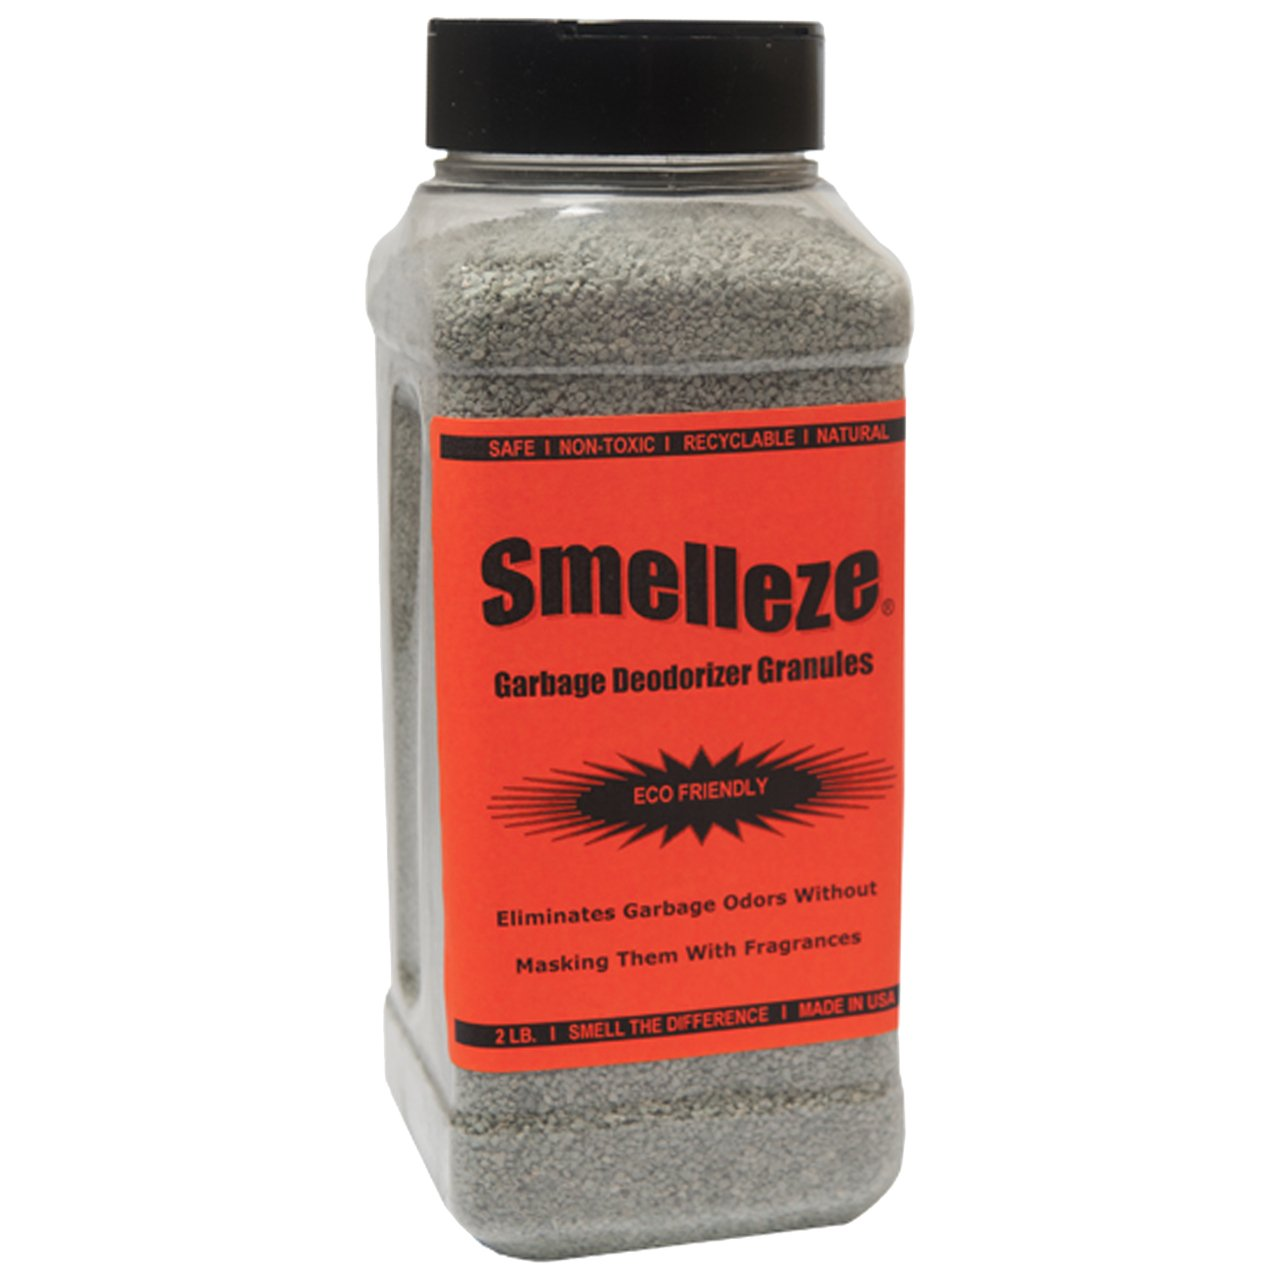 SMELLEZE Garbage Natural Smell Enlèvement désodorisant : 2 Granules lb. Rids Smelly Trash Stench IMTEK Environmental Corp. 40300